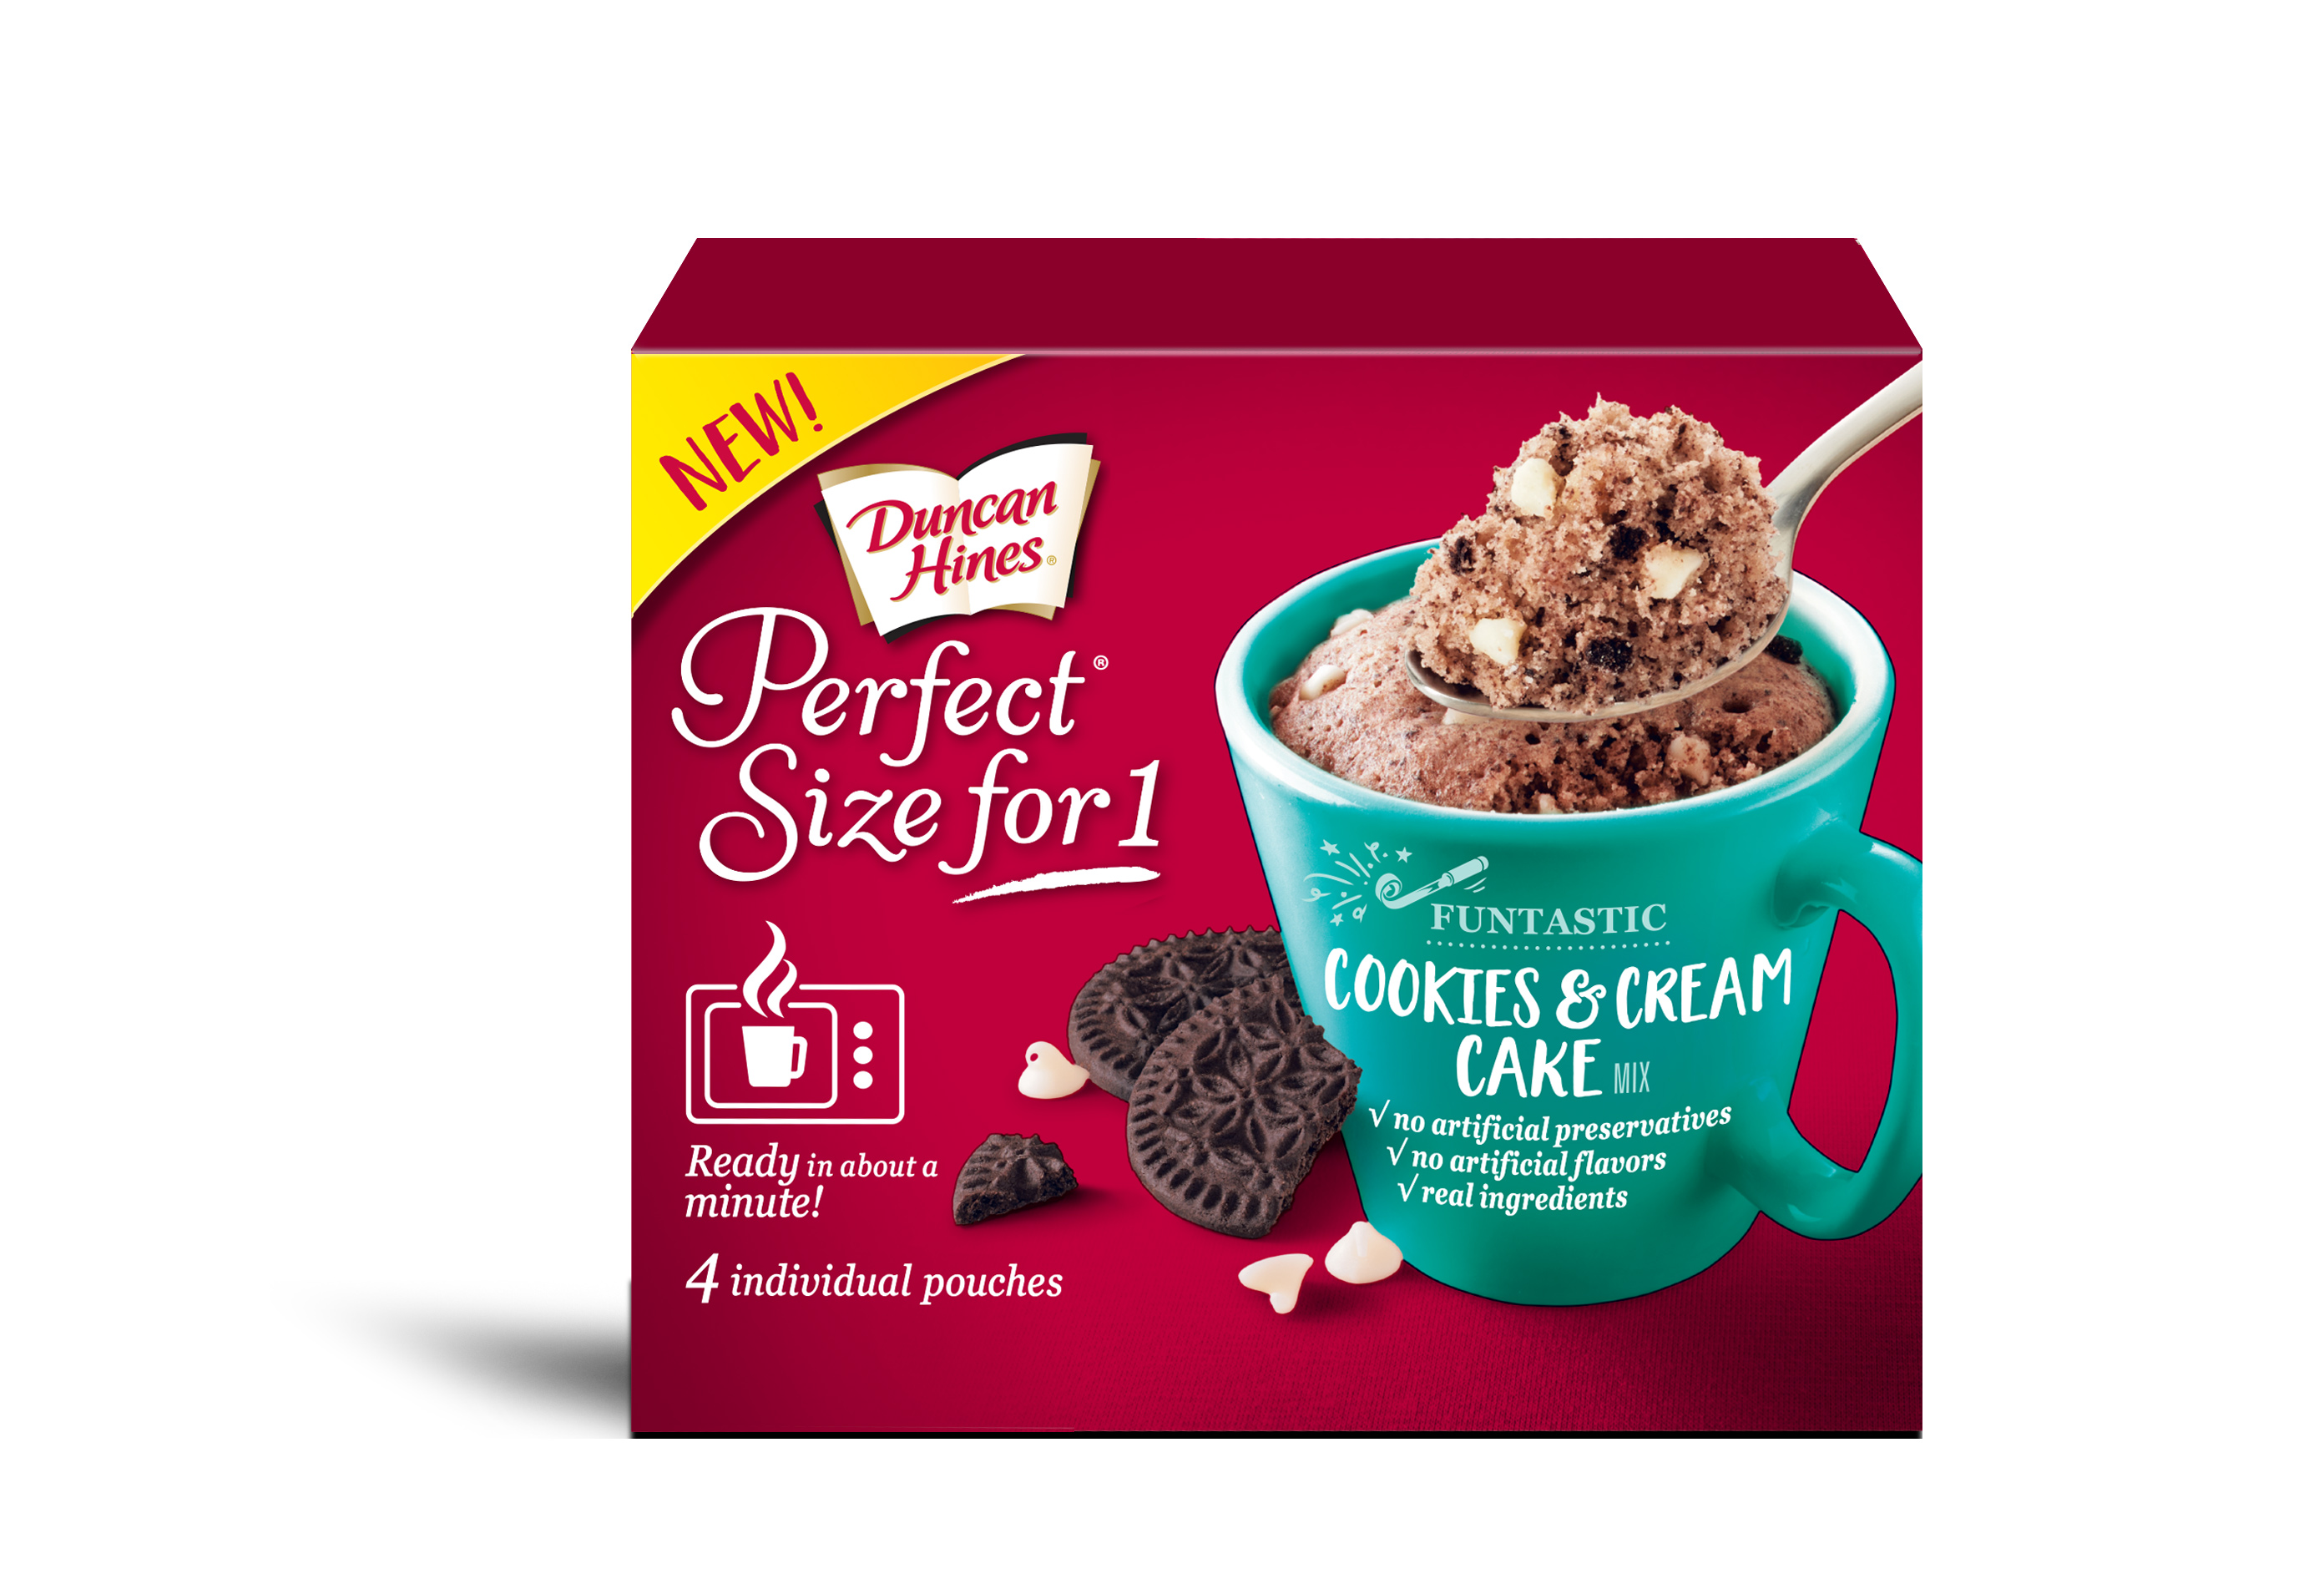 Duncan Hines Perfect Size For 1 Cookies & Cream Cake